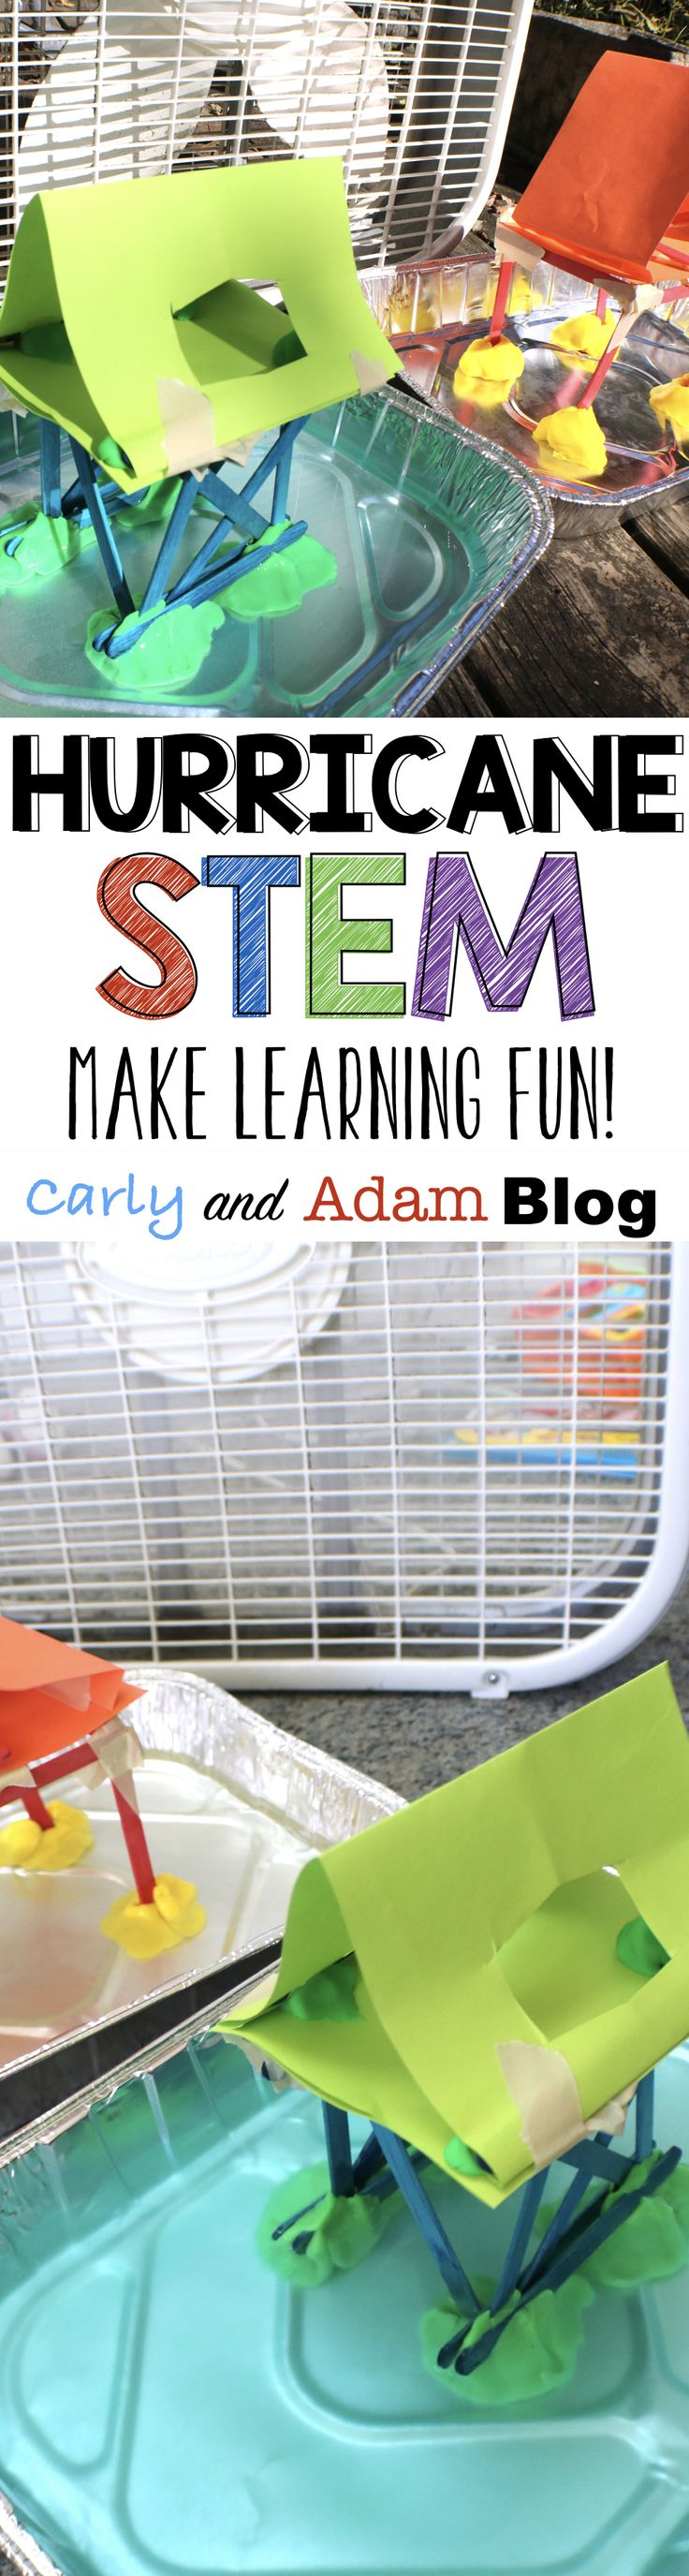 Make learning fun! This activity is perfect to use to teach students about hurricanes and hurricane safety by designing a building that will withstand a hurricane simulation.